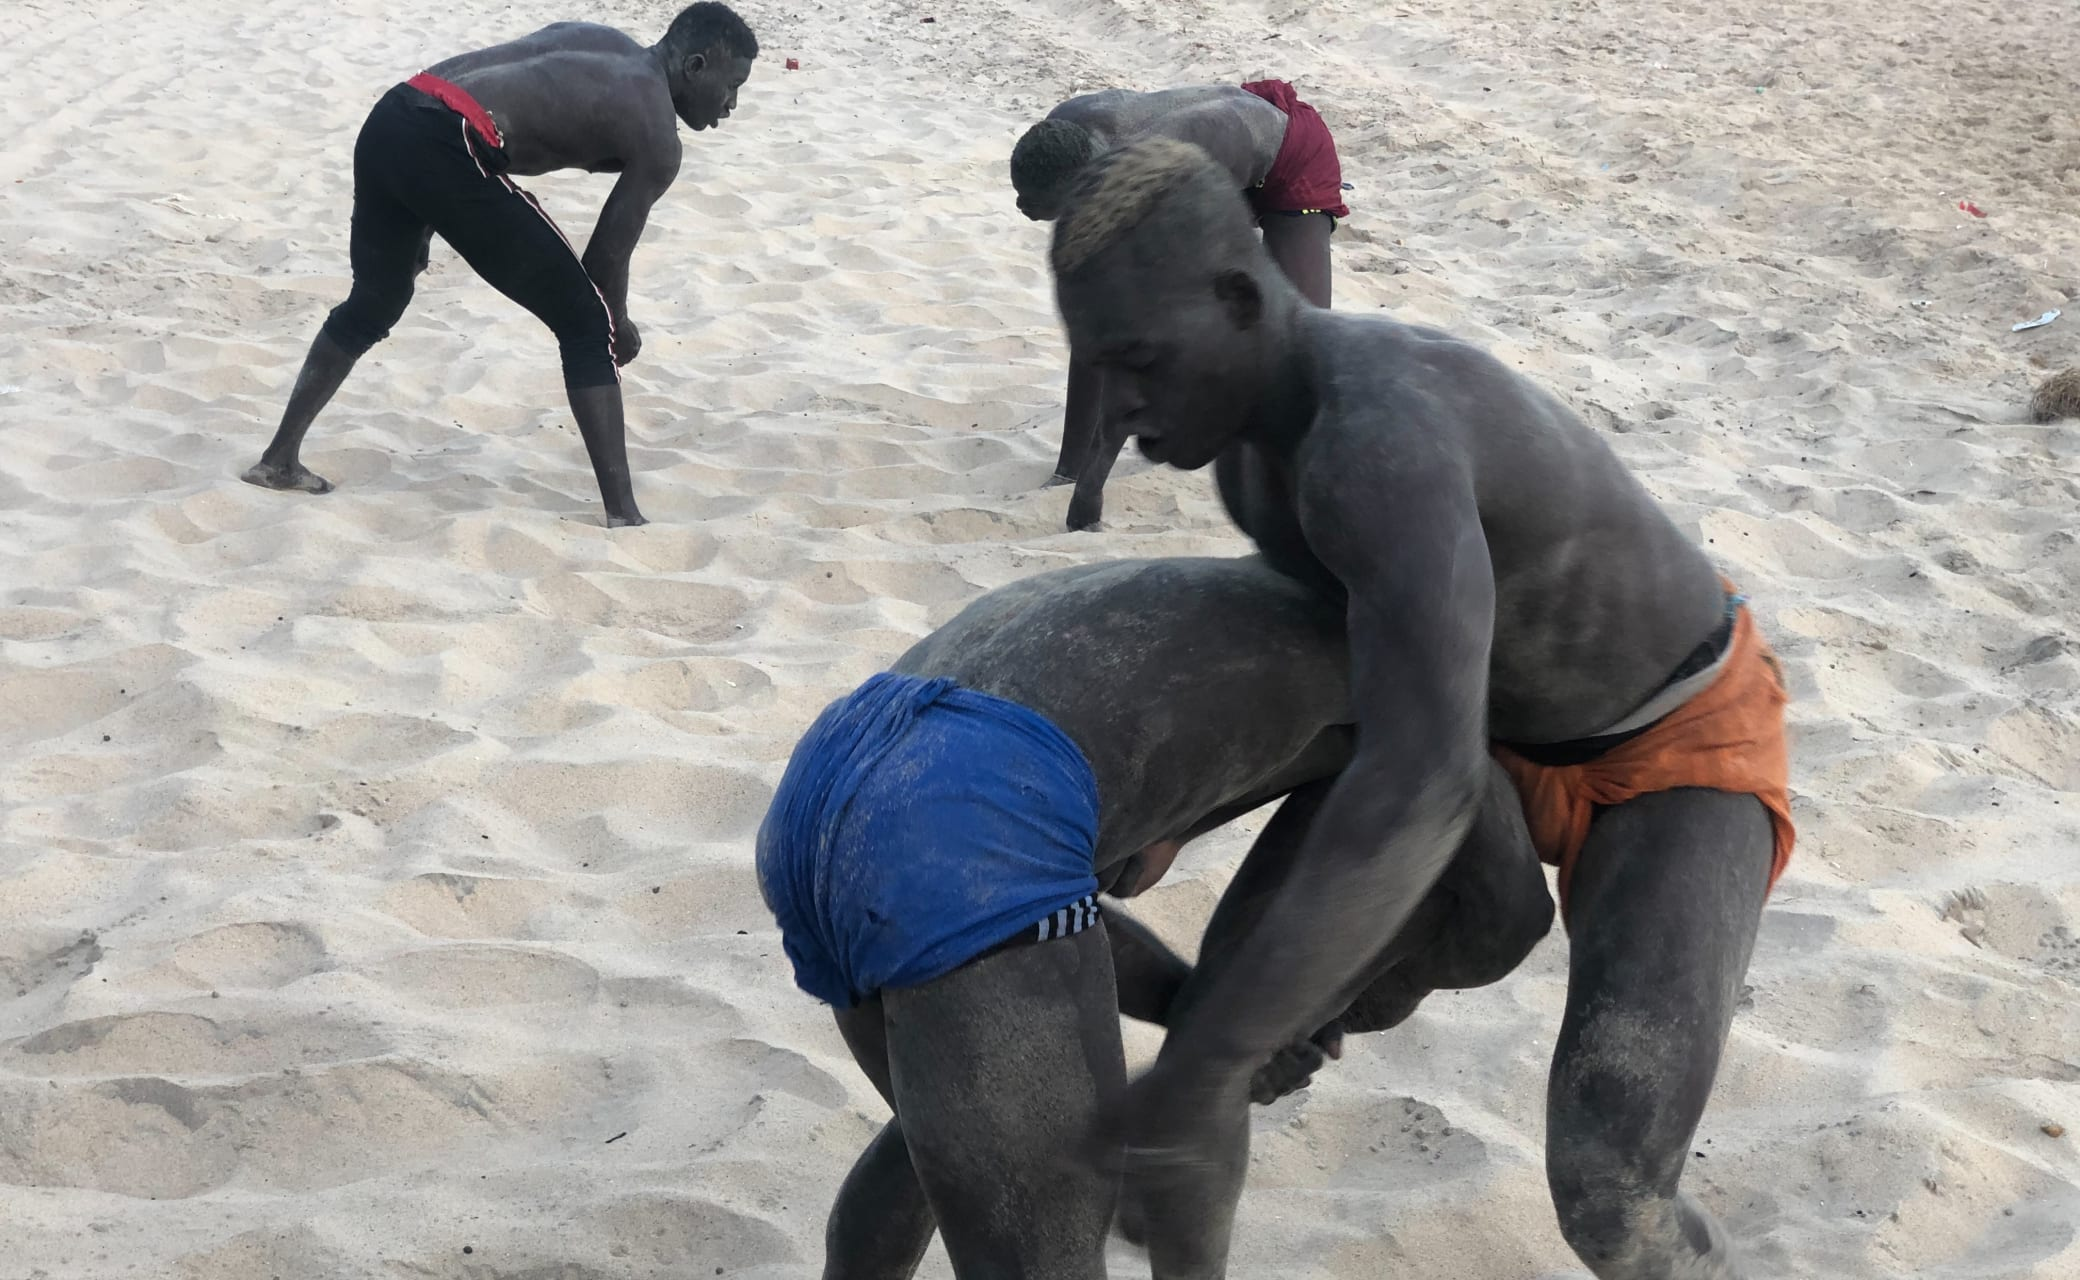 Mbour - The Senegalese Wrestling